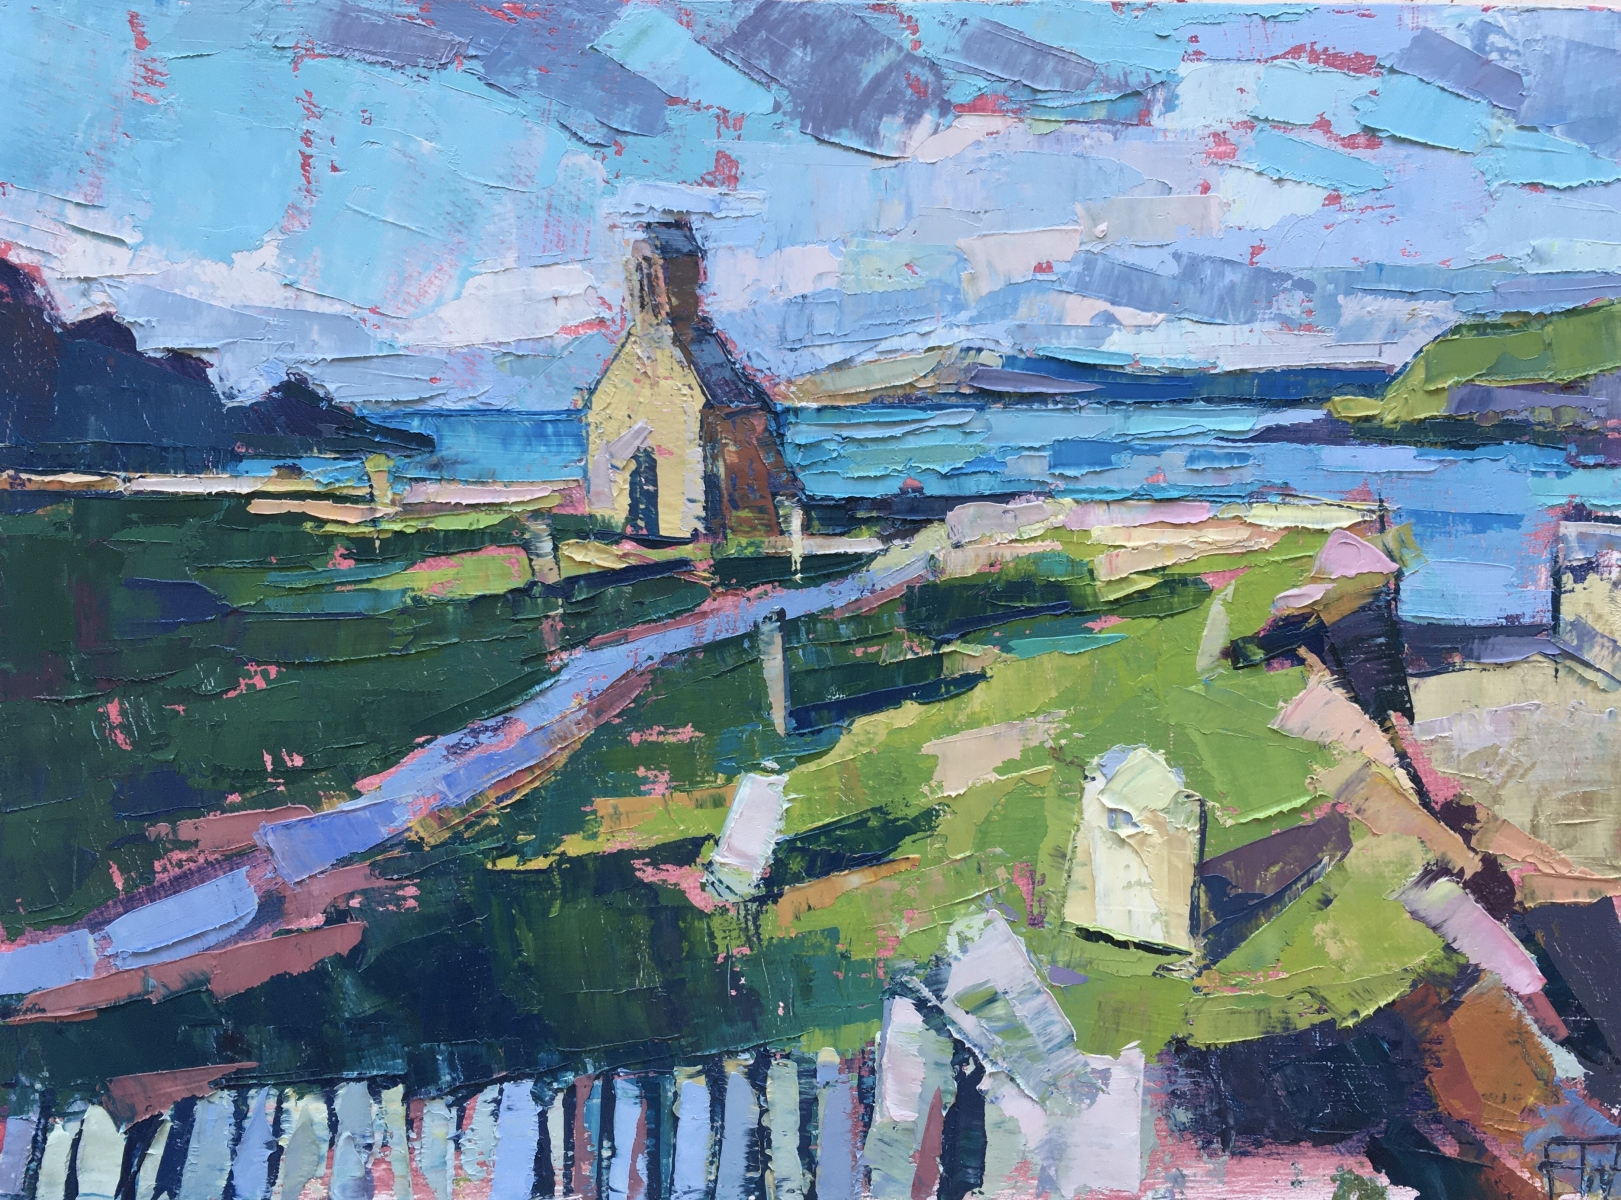 """FRANCES WATTS    THE ERODED CHURCH   OIL ON BOARD   20 x 27 cm   £650<br /><a class=""""buy-button"""" href=""""mailto:info@dacre-art.com?subject=Website%20Enquiry"""">Enquire</a>"""